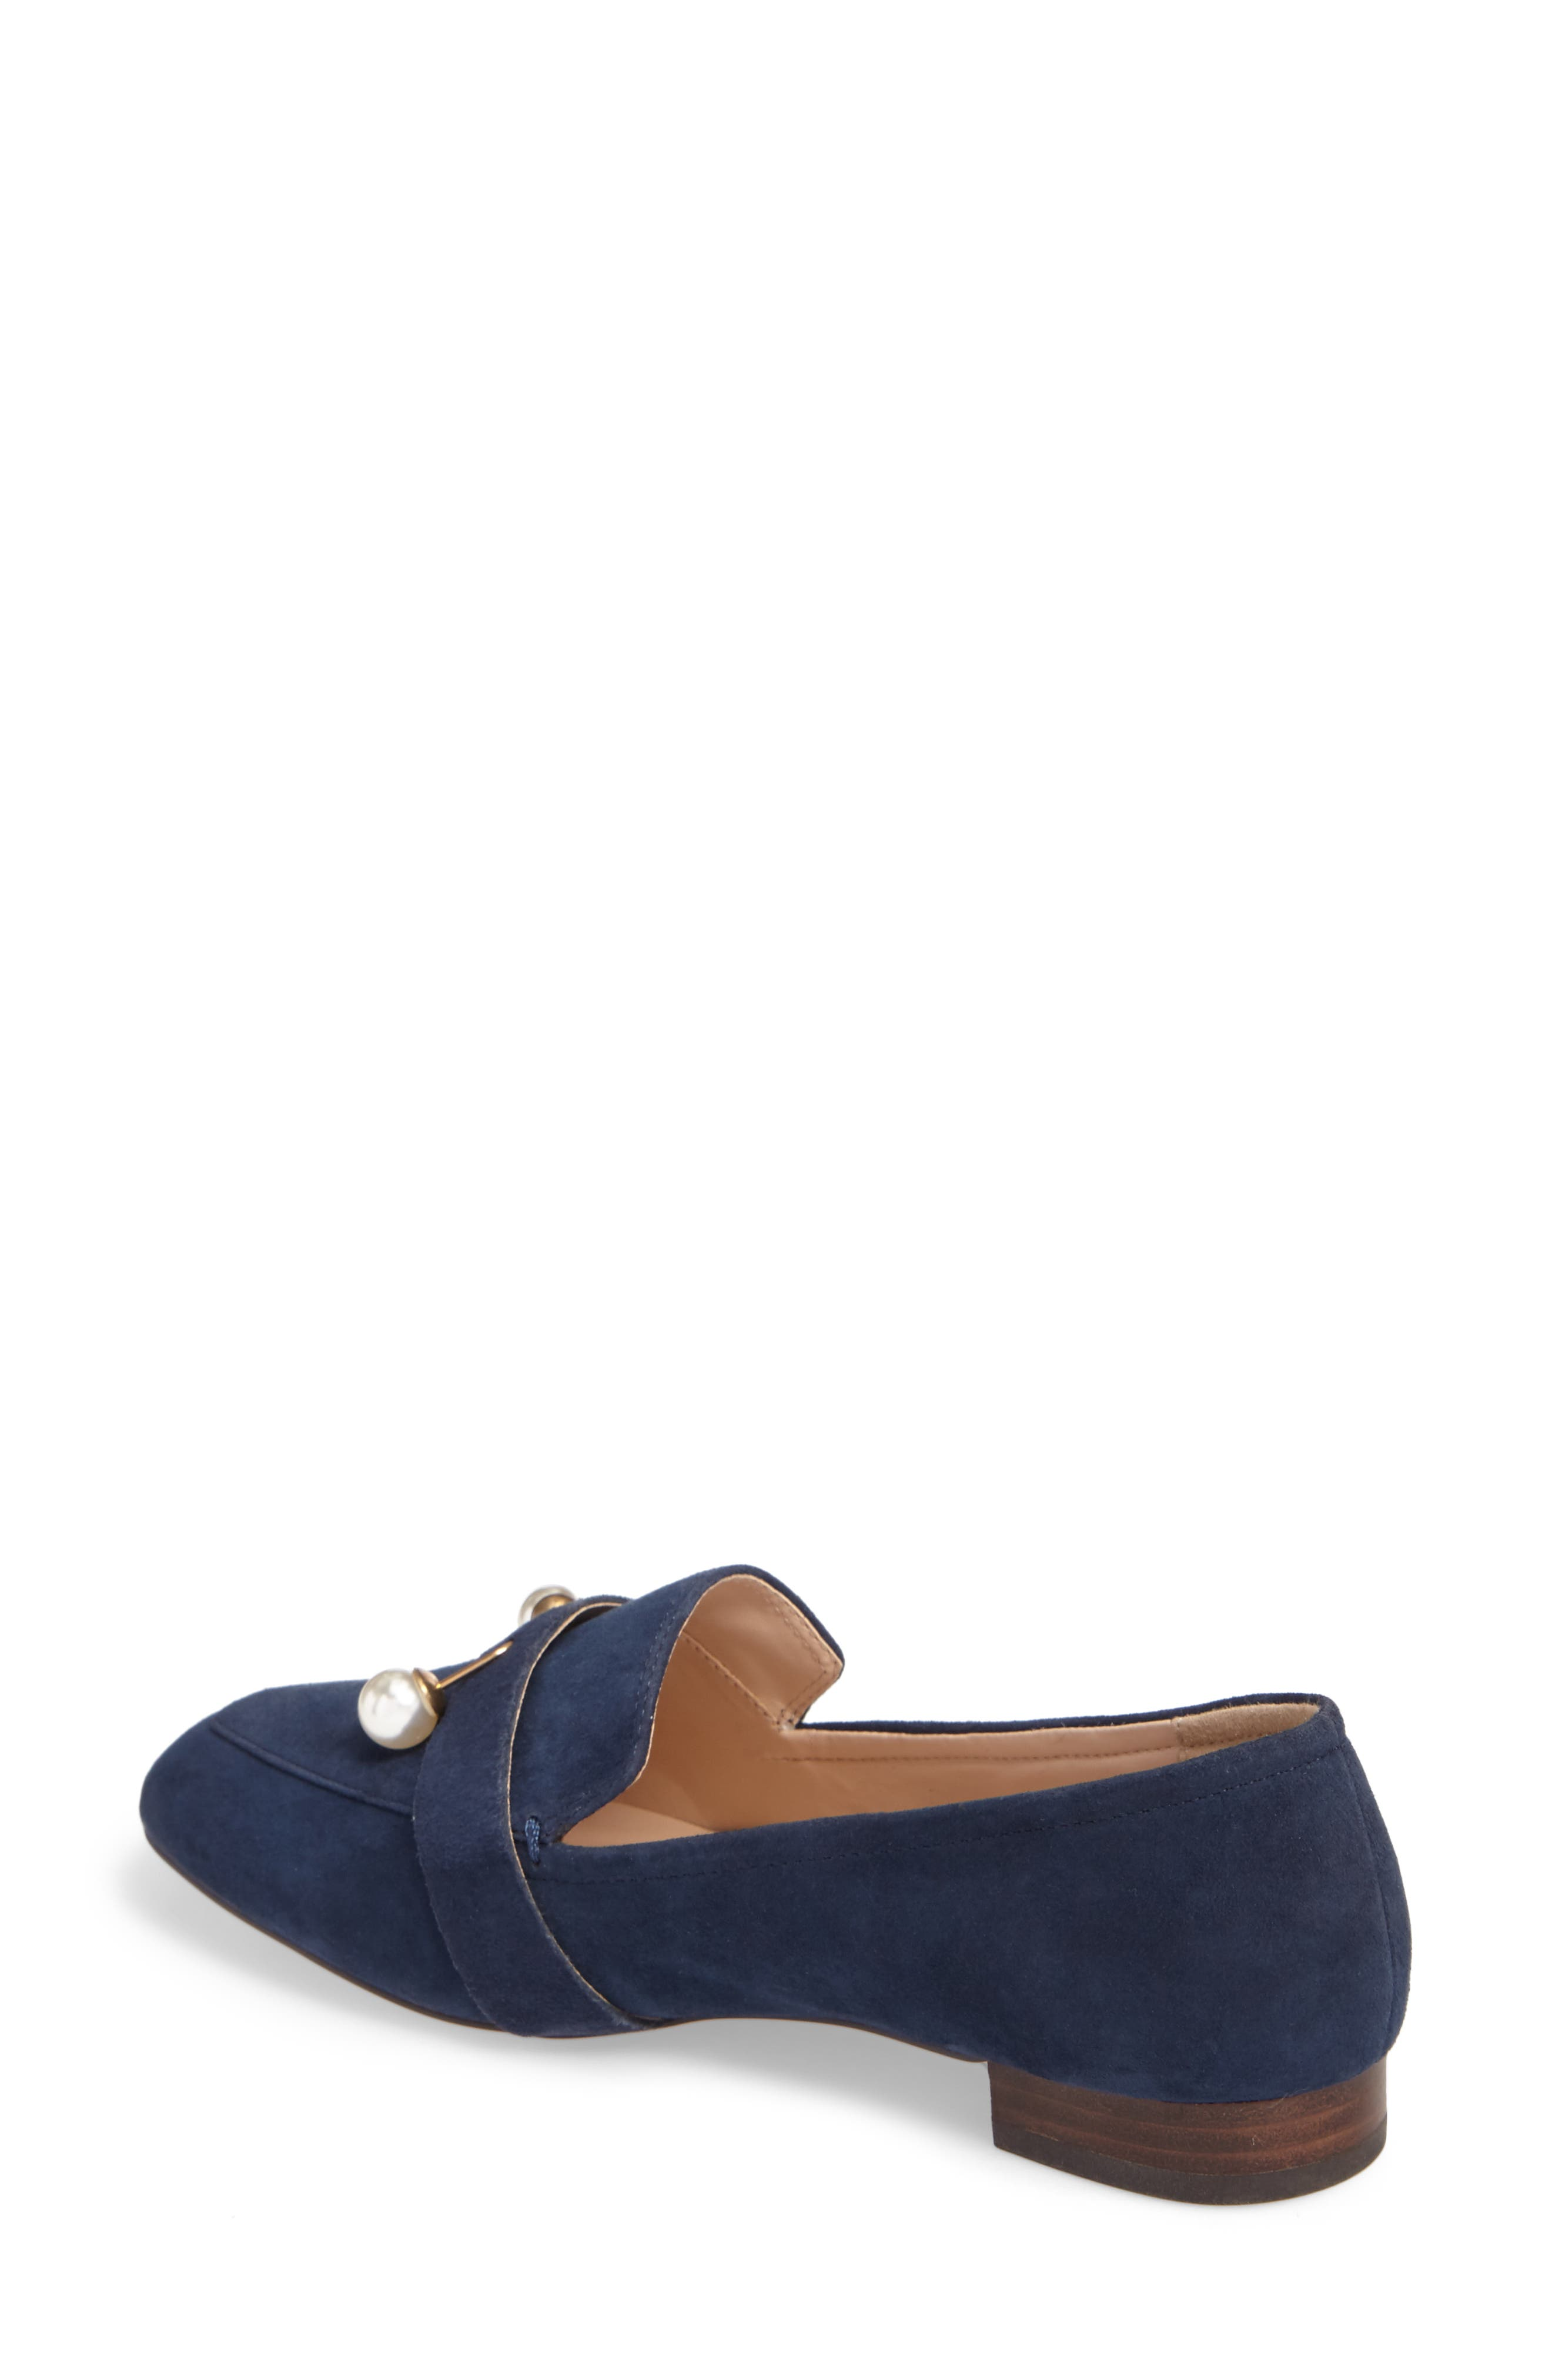 Caspar Loafer,                             Alternate thumbnail 7, color,